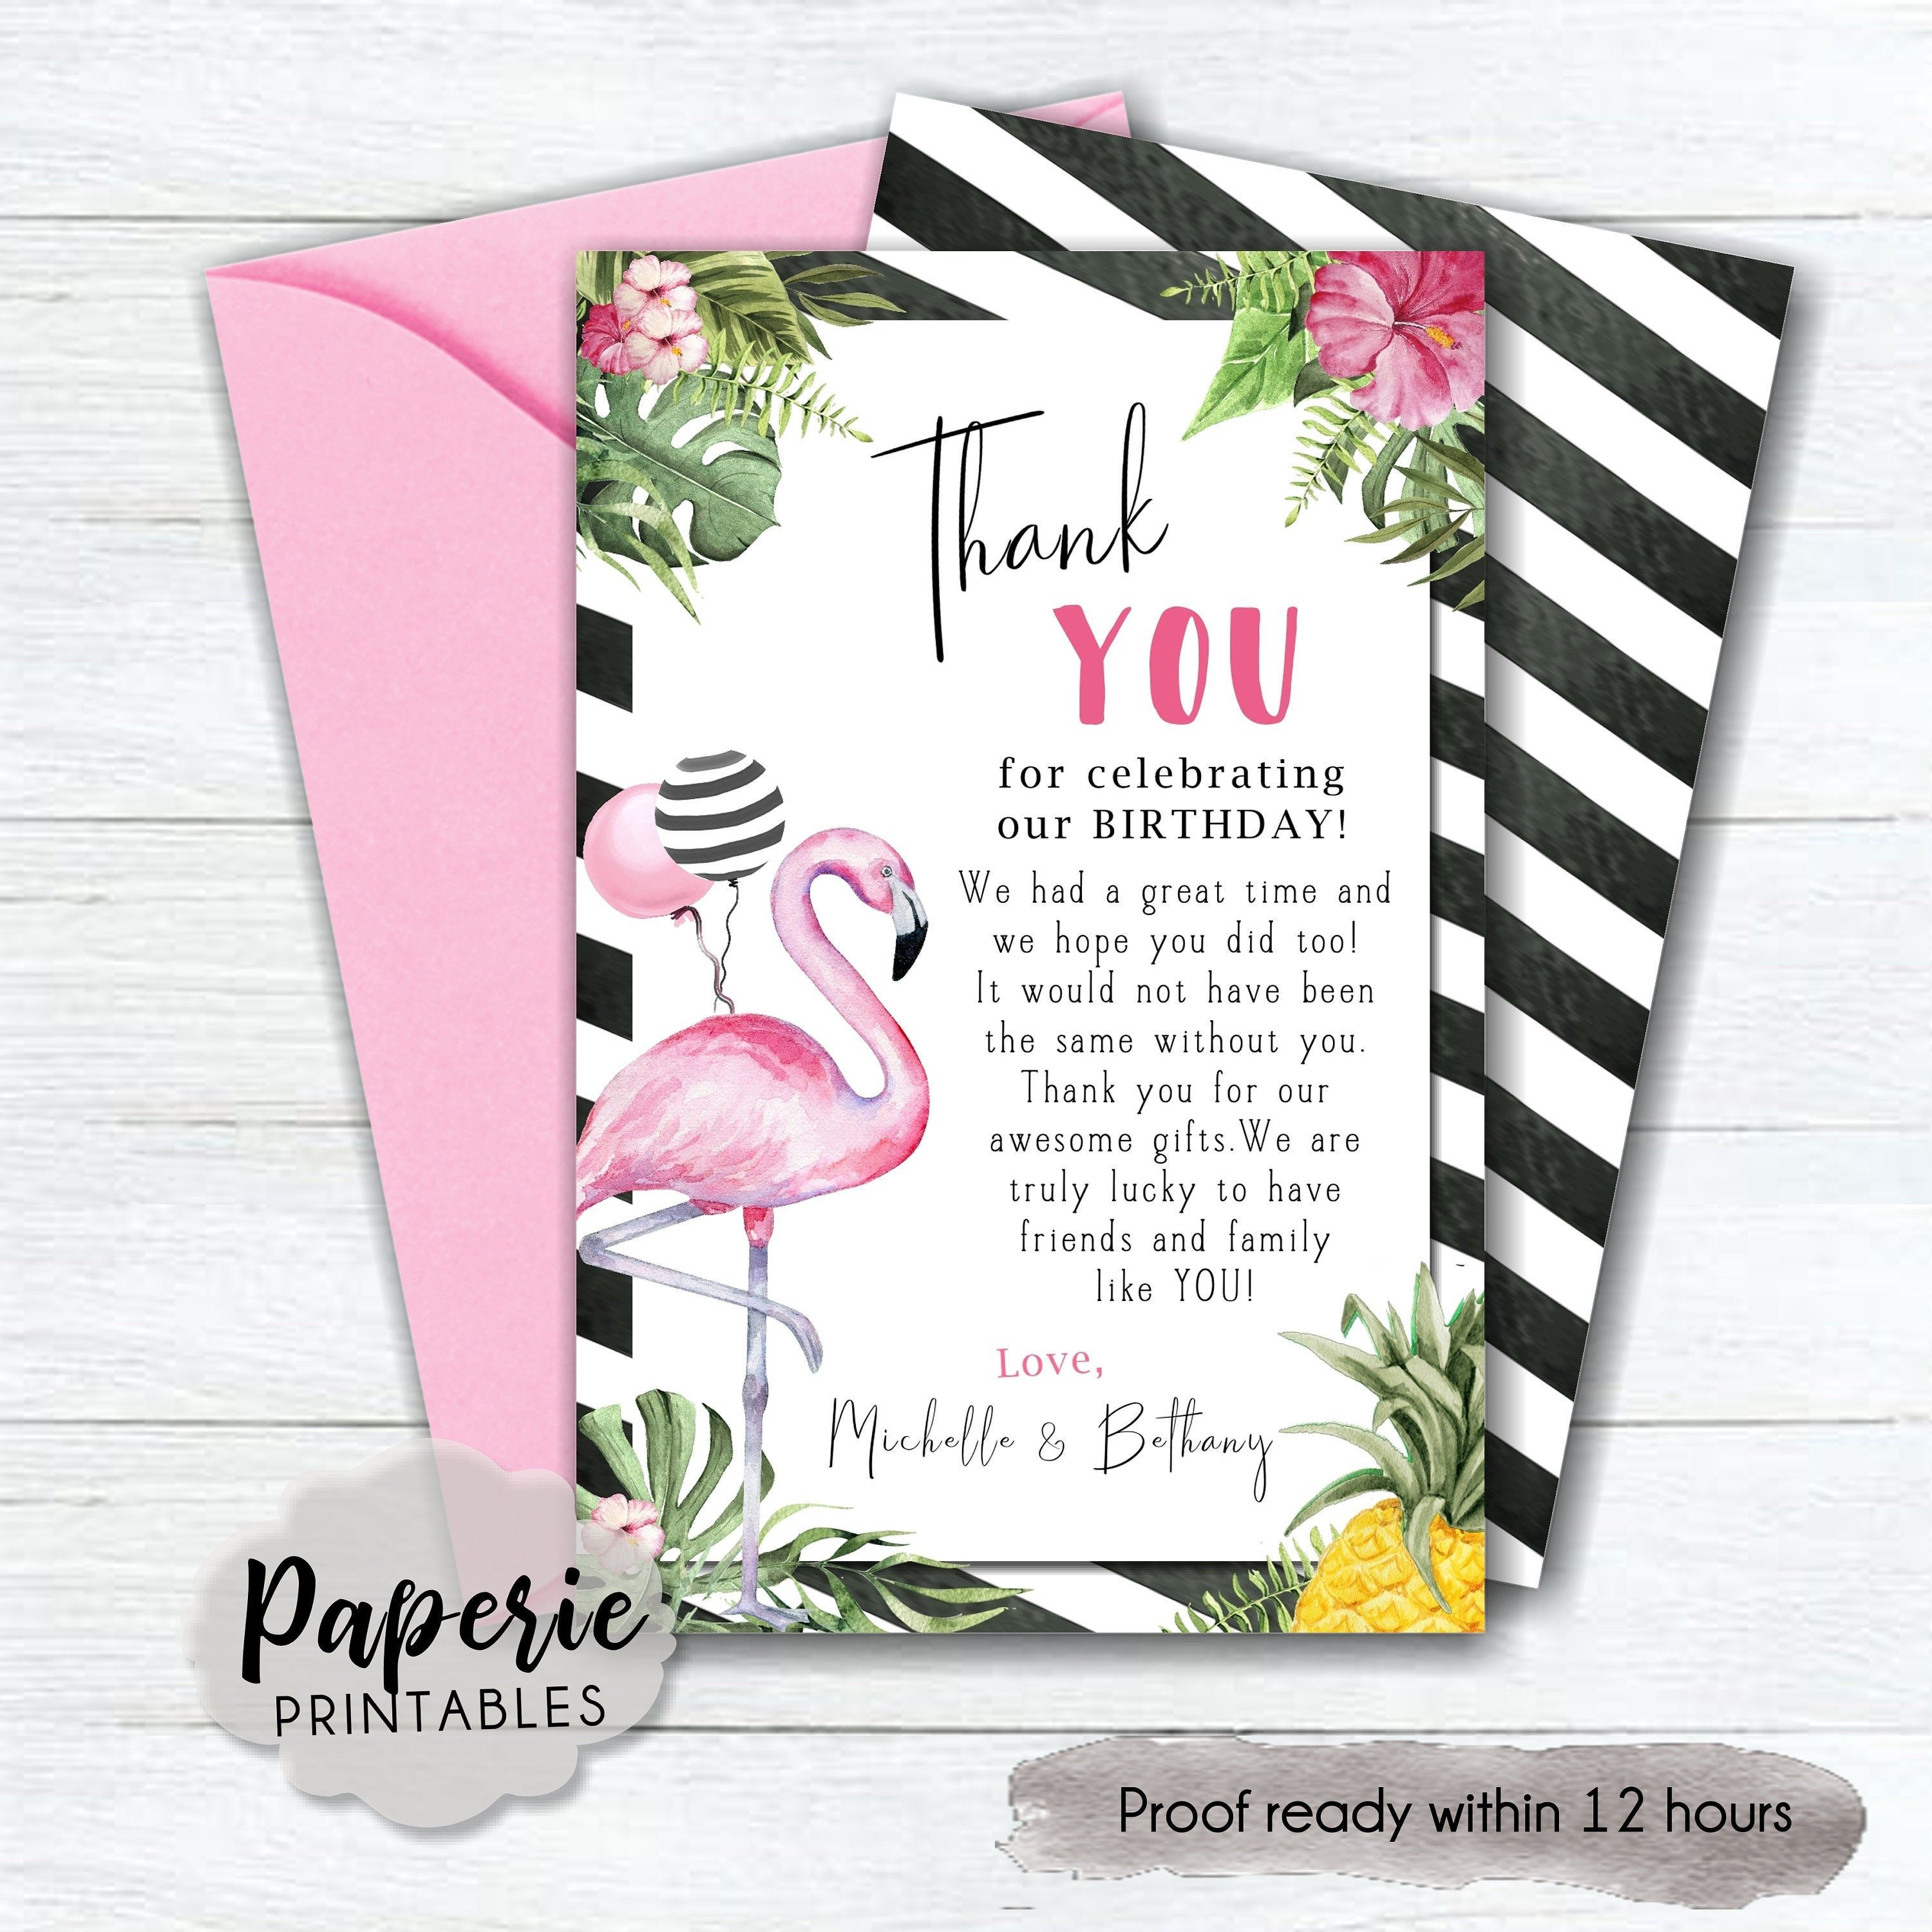 Flamingo Birthday Party Thank You Card Let S Flamingle Etsy In 2020 Flamingo Birthday Party Birthday Thank You Thank You Cards